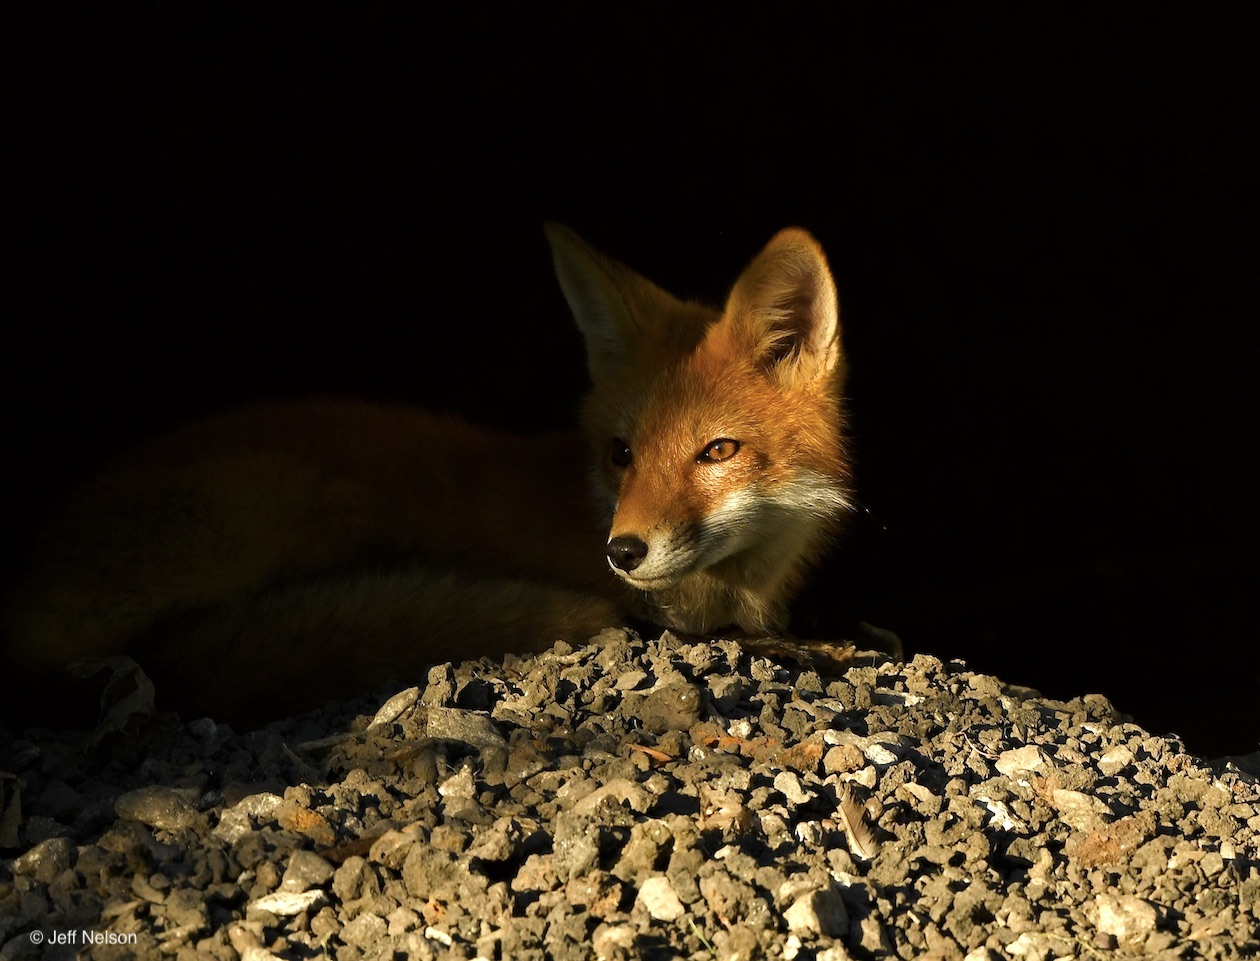 Fox in early morning light in den, photo by Jeff Nelson